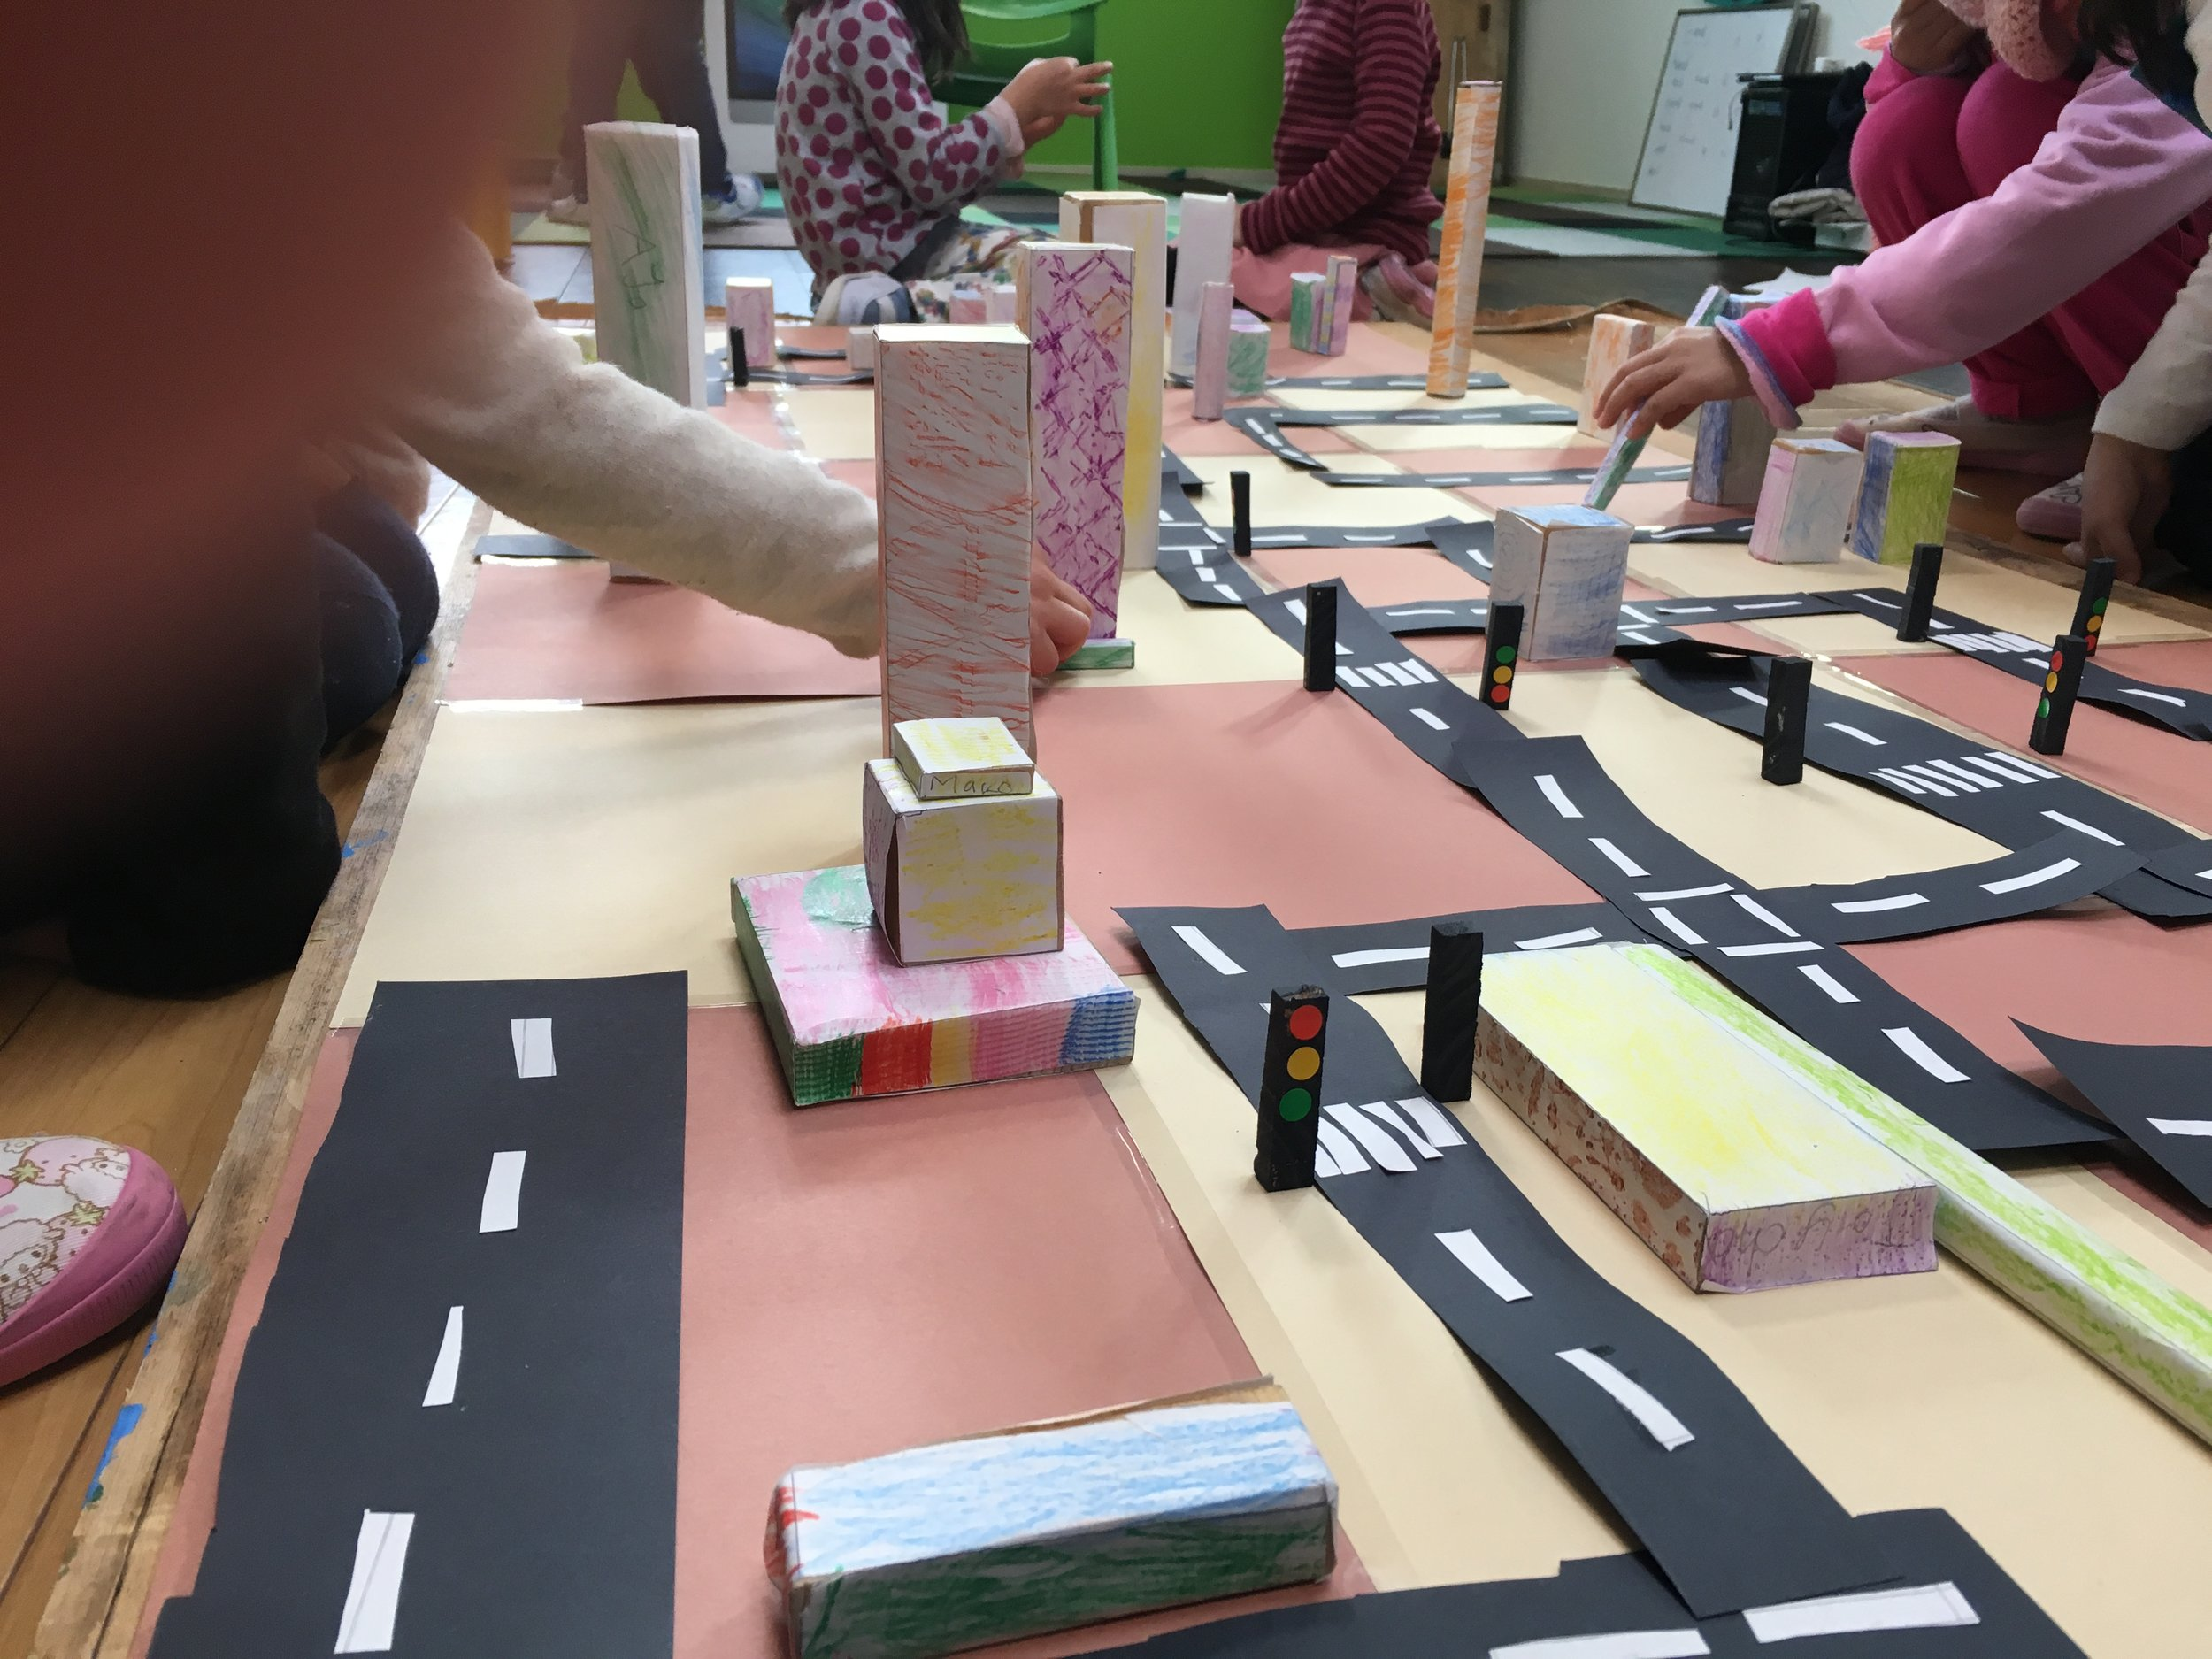 By keeping the design flexible we were able to rebuild our city in different ways, opening up many new opportunities for further discussion and learning.